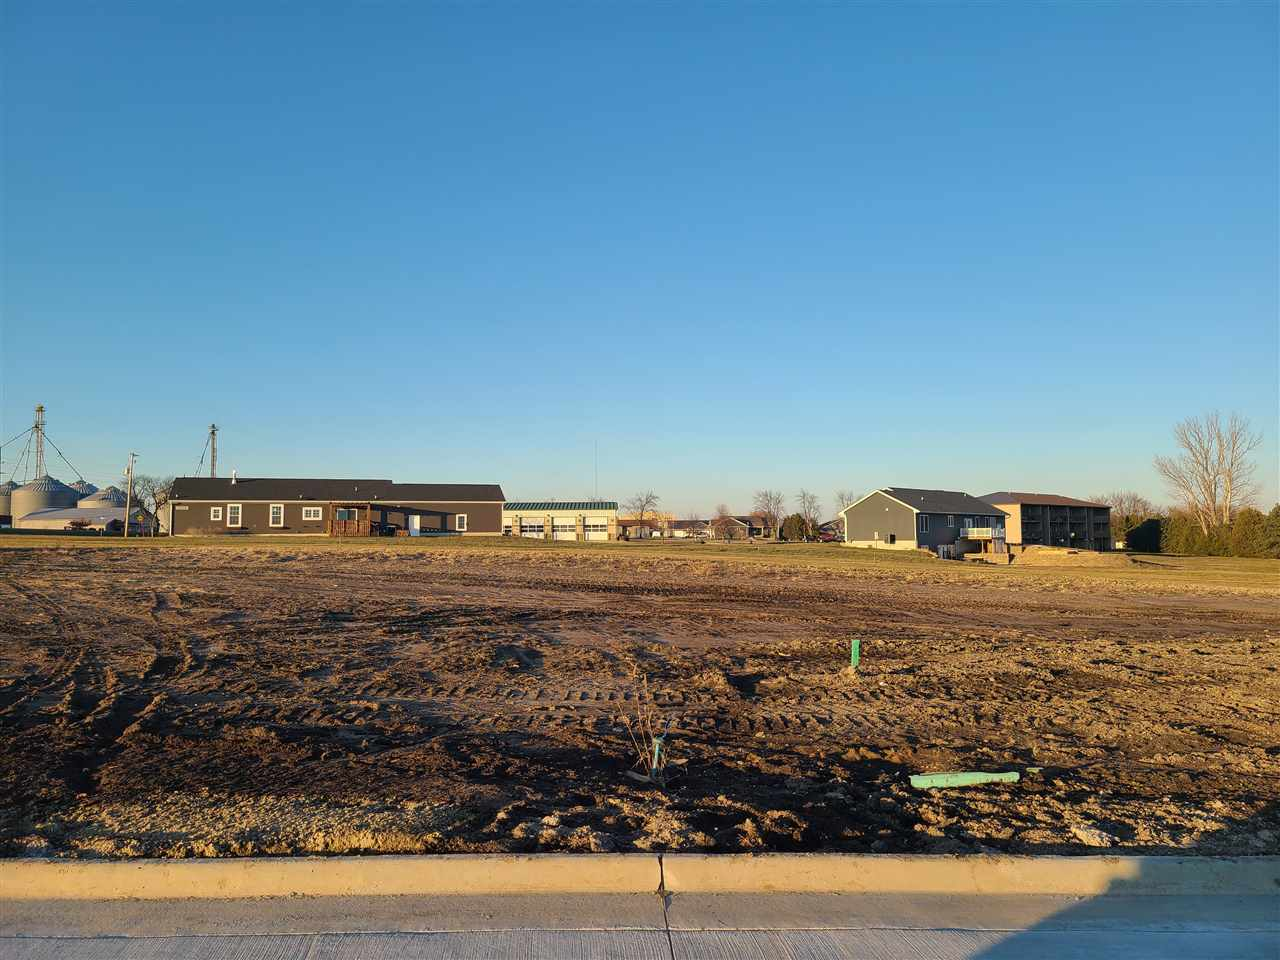 JON STREET LOT 2 Property Photo - Dunkerton, IA real estate listing